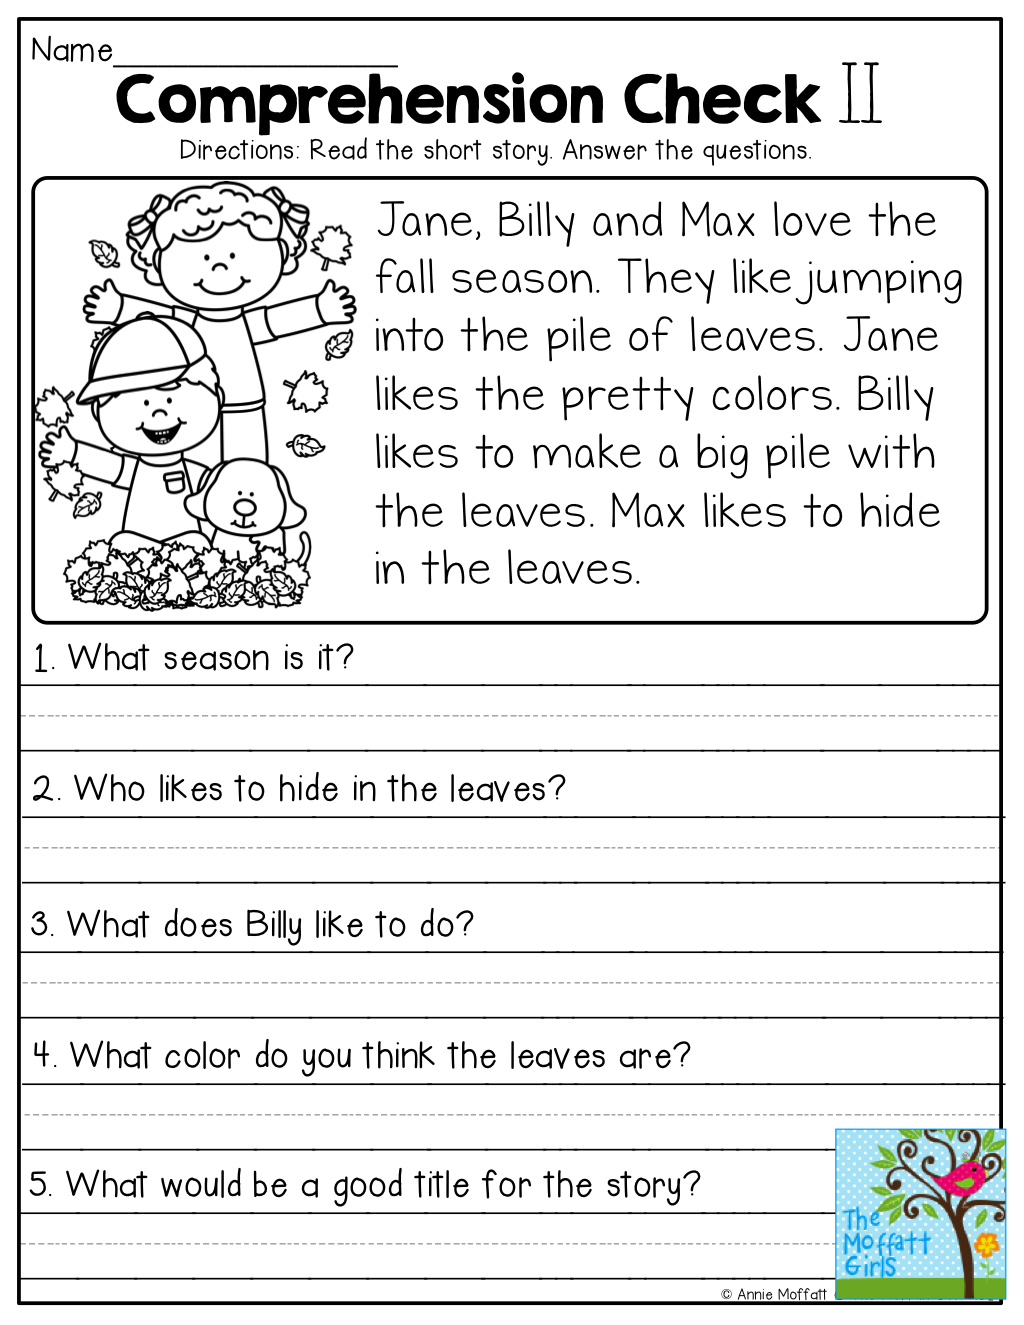 Uncategorized 1st Grade Comprehension Worksheets comprehension checks and so many more useful printables best of read the simple story answer questions tons great to help with grade level skills